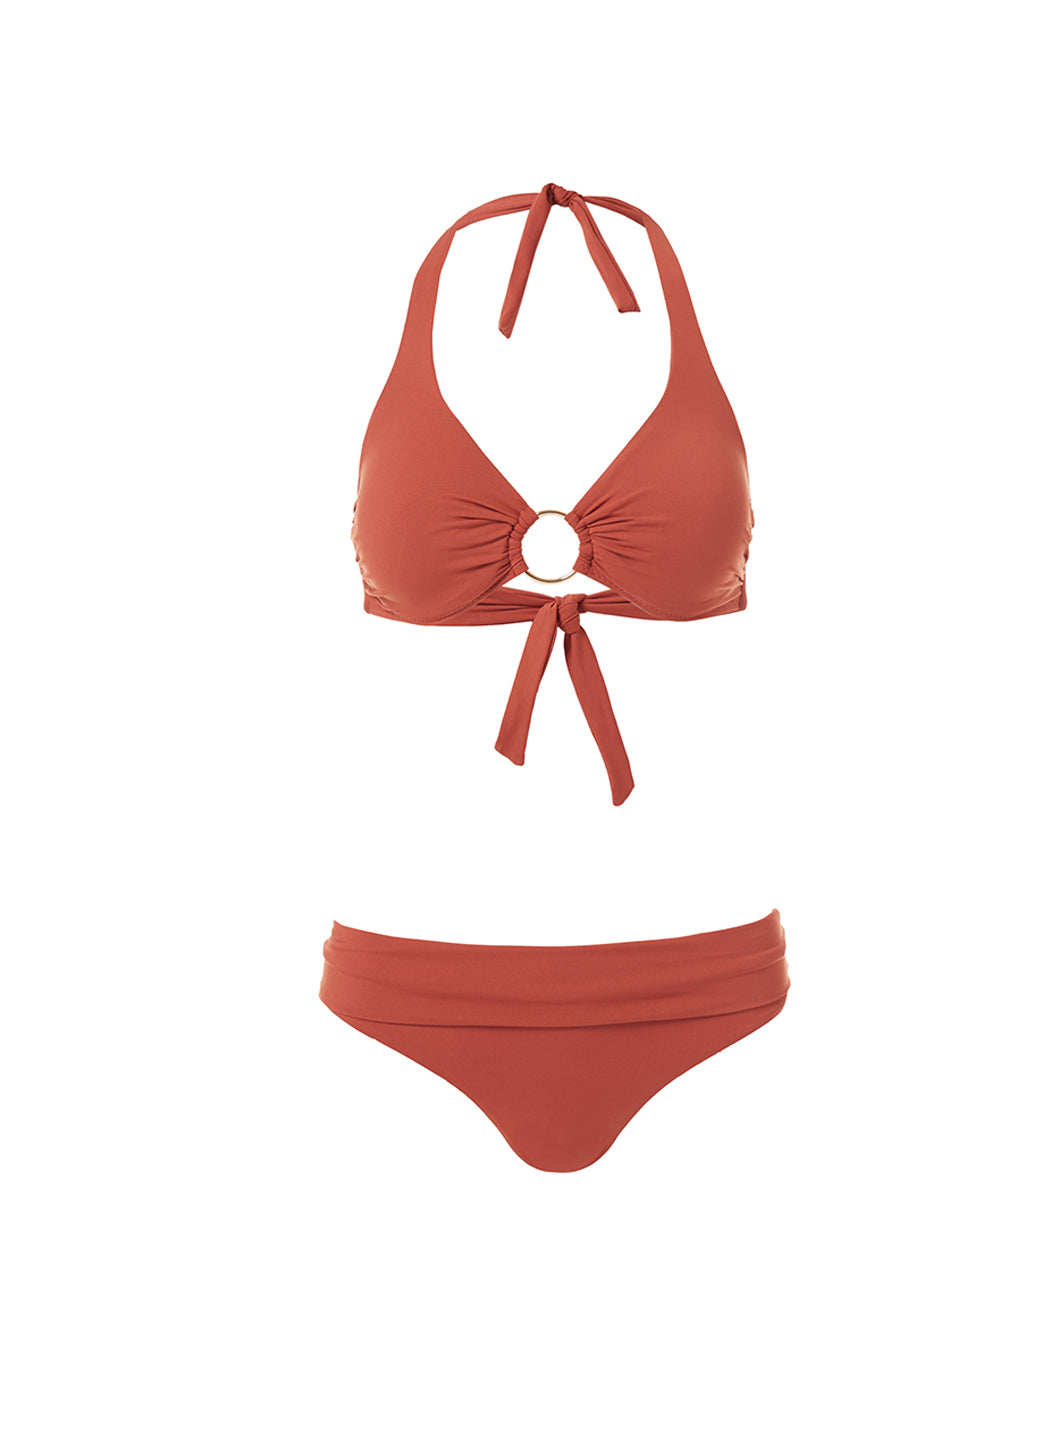 Brussels Cinnamon Halterneck Ring Supportive Bikini